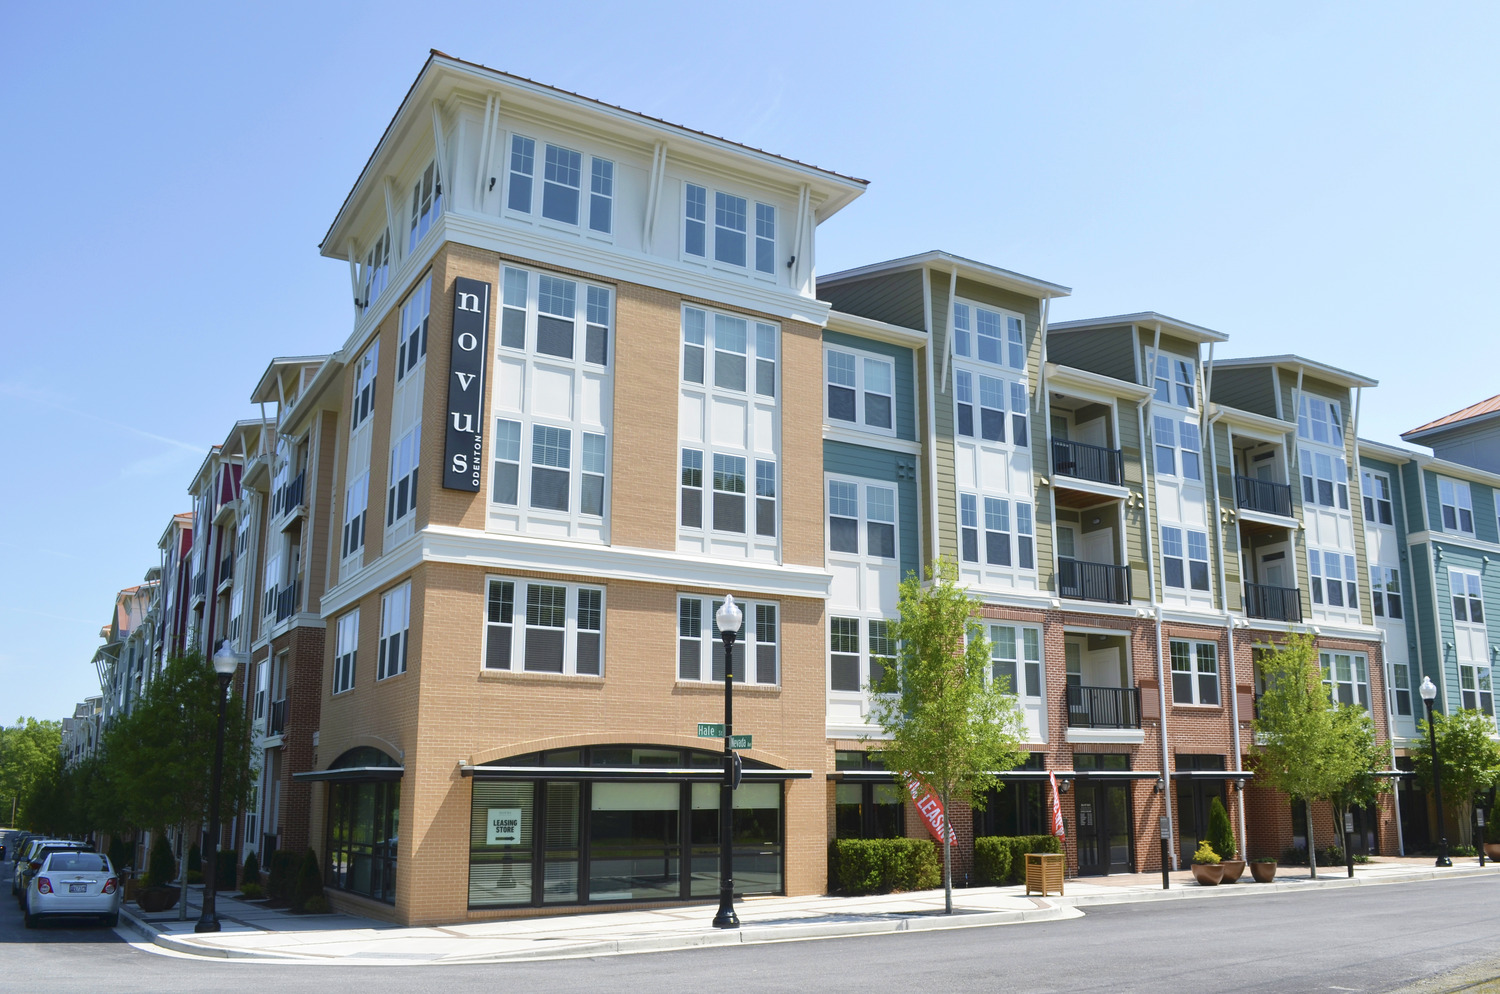 CBG builds Novus Odenton, a 244-Unit Luxury Apartment Community in Odenton, MD - Image #1